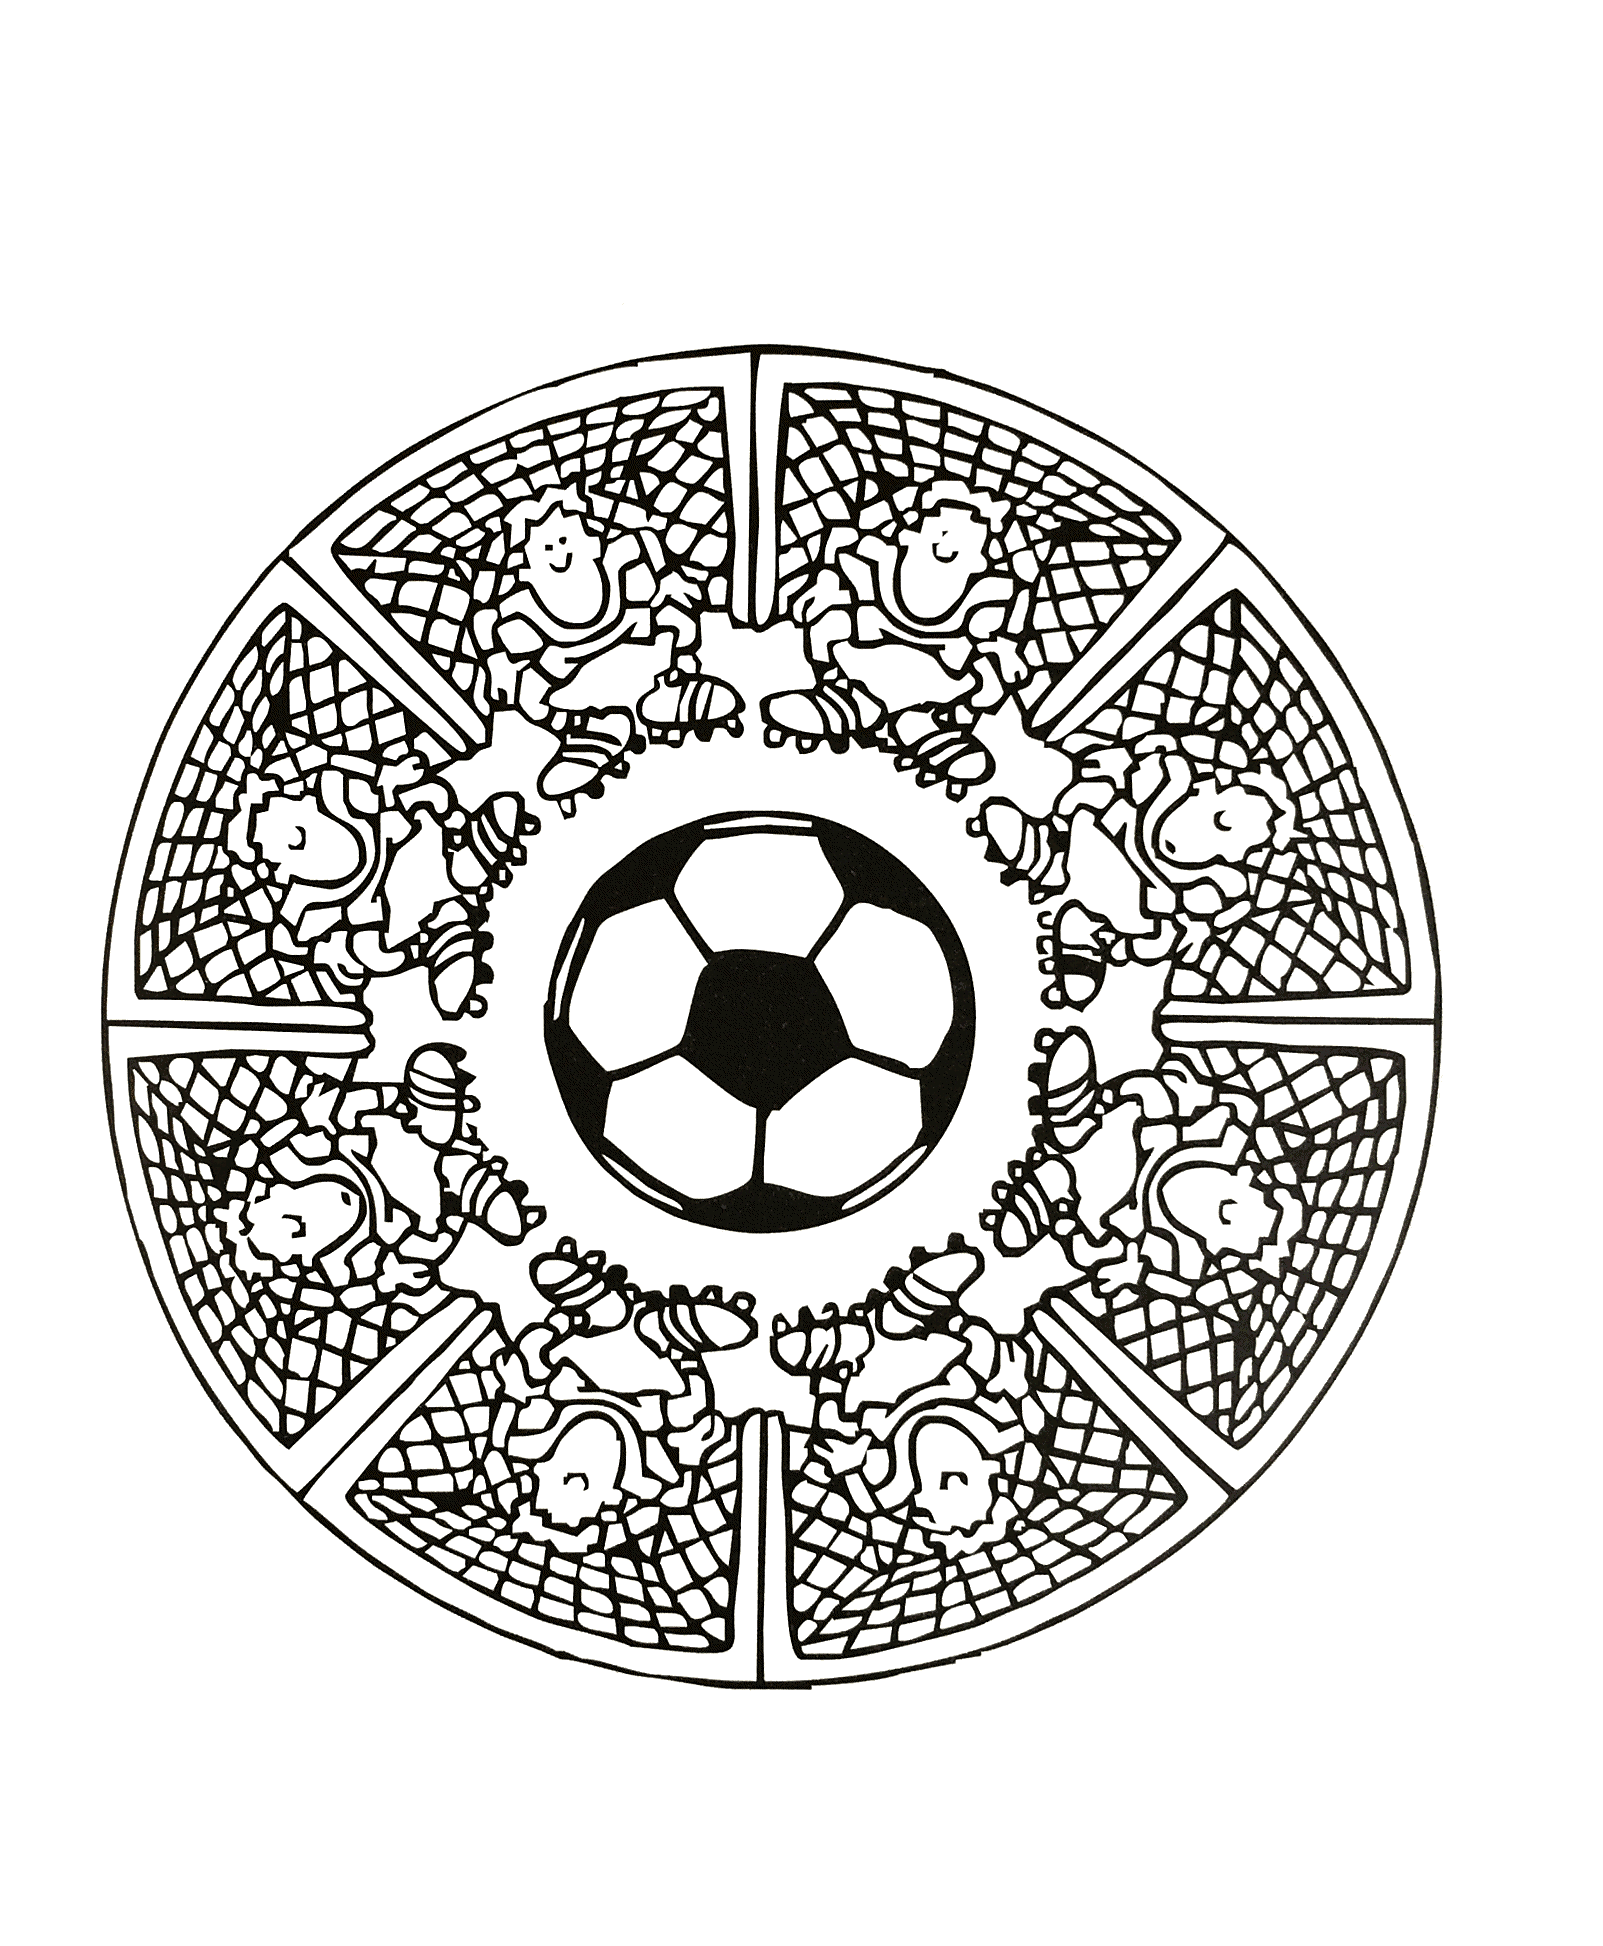 Football Mandala coloring page for beginners. Funny to print and color.